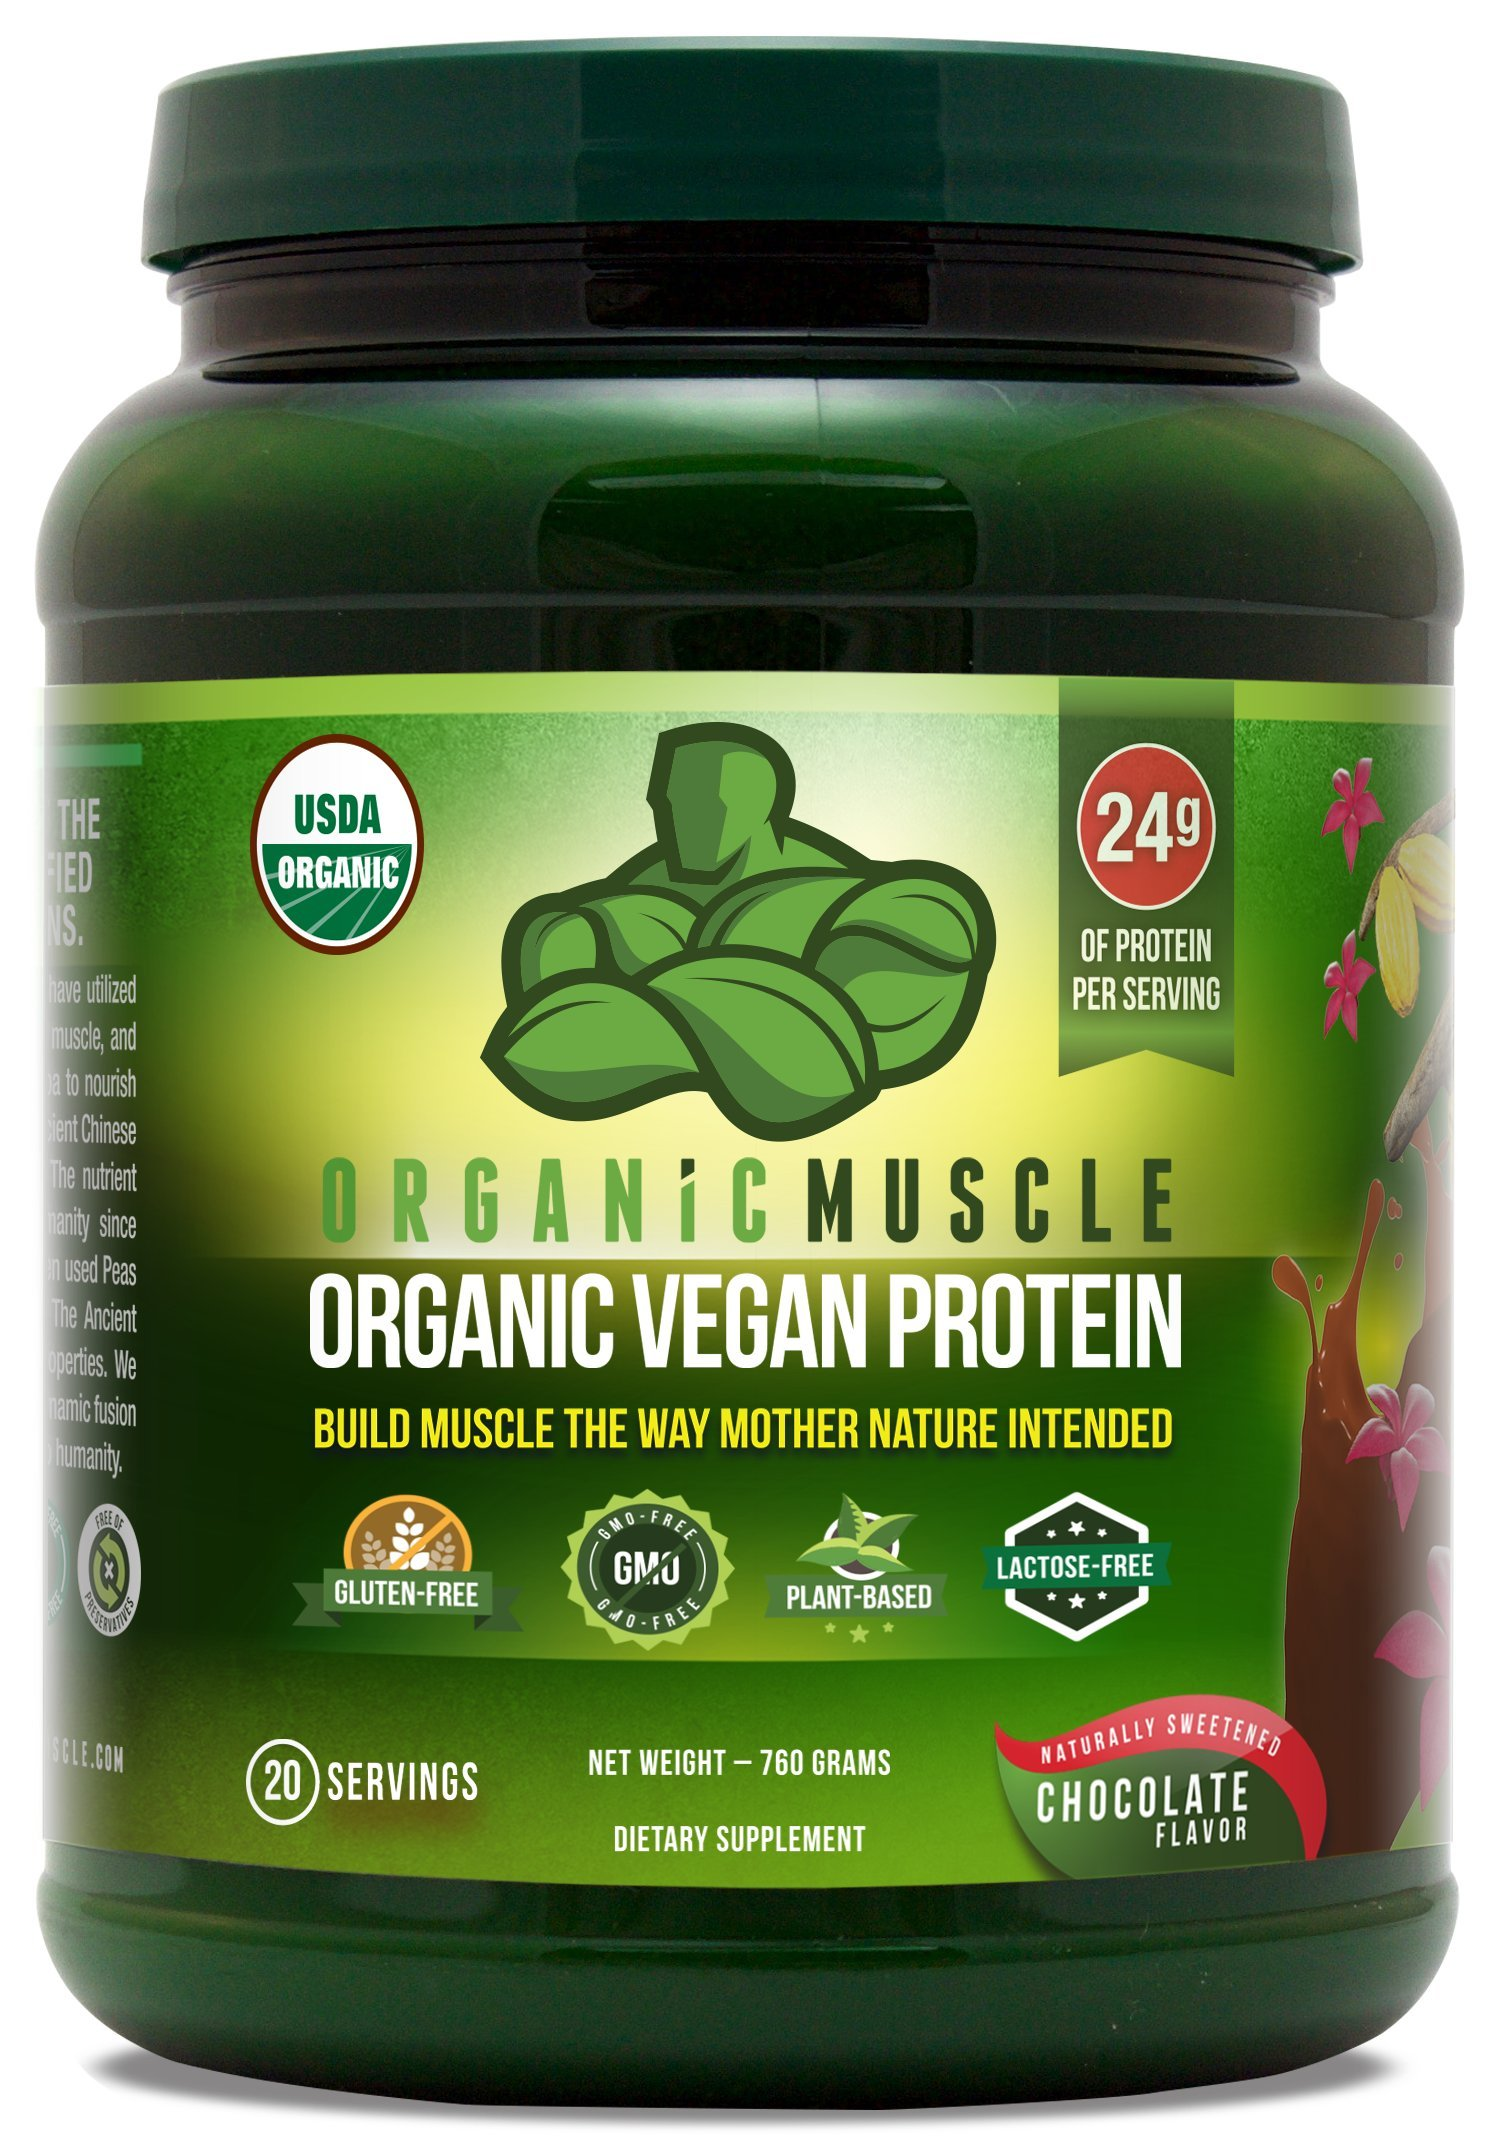 Organic Vegan Protein Powder - Great Tasting Chocolate Flavor W/ 24g of Protein -100% Organic Plant Based Protein Blend of Pea, Hemp, Rice Protein +Chia, Flax Seed, More -760g by Organic Muscle